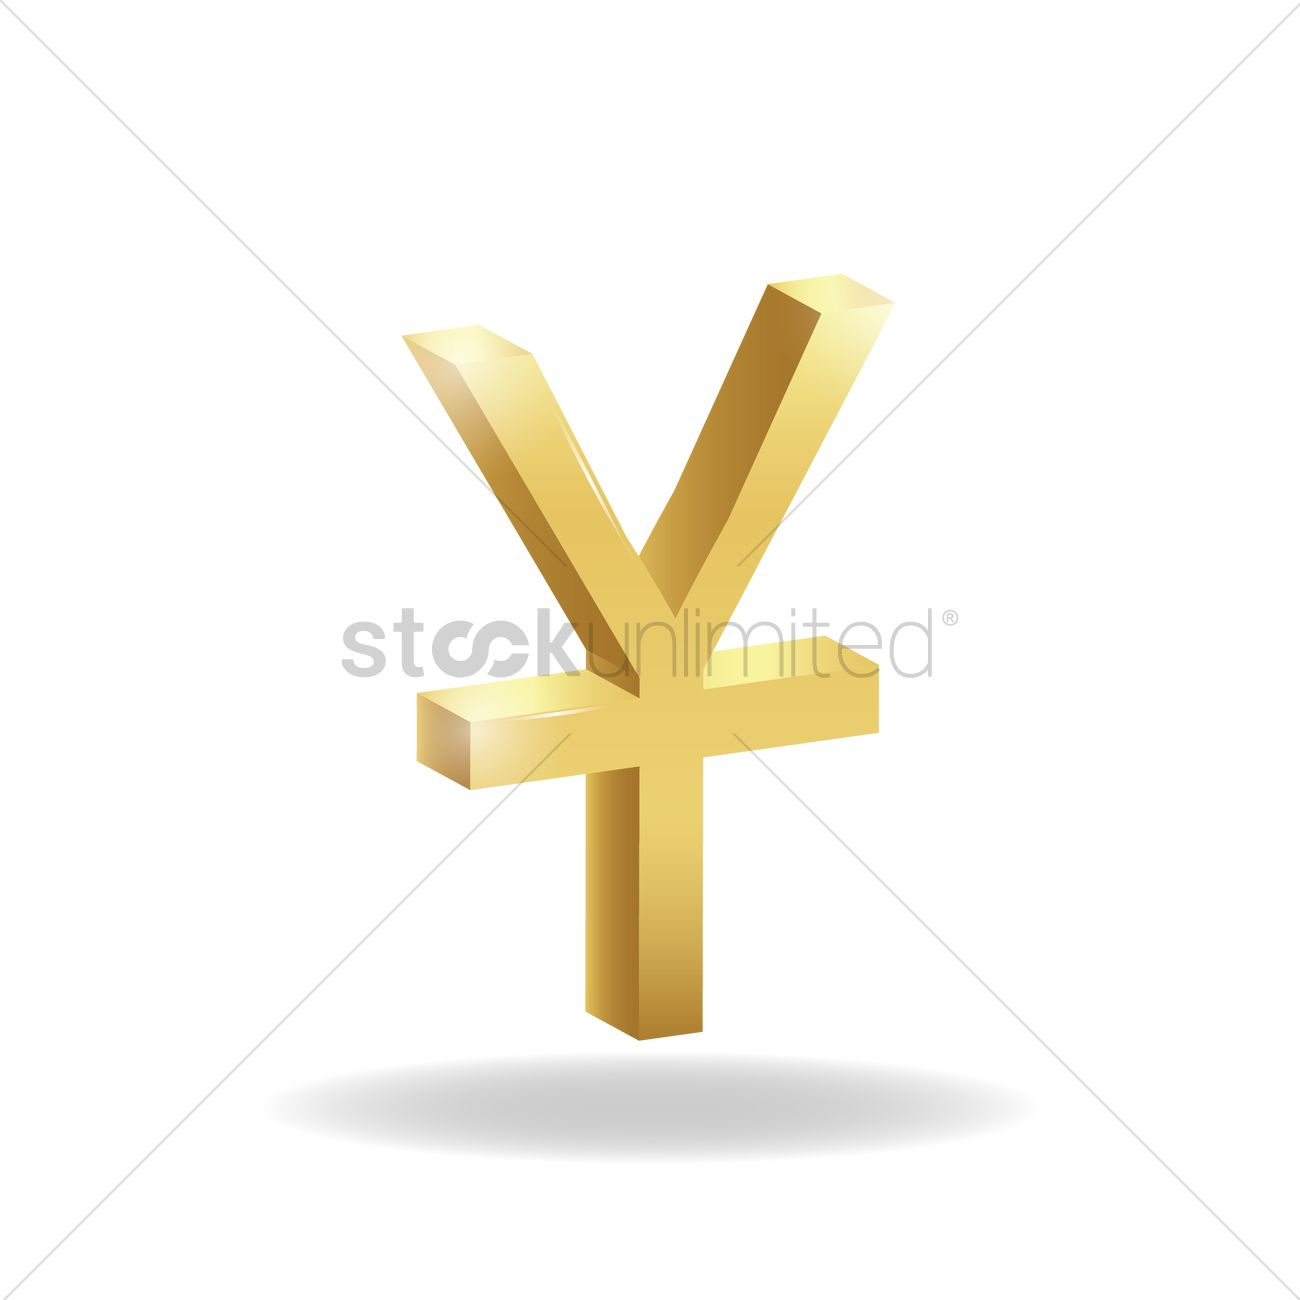 3d Chinese Yuan Currency Symbol Vector Image 1827766 Stockunlimited